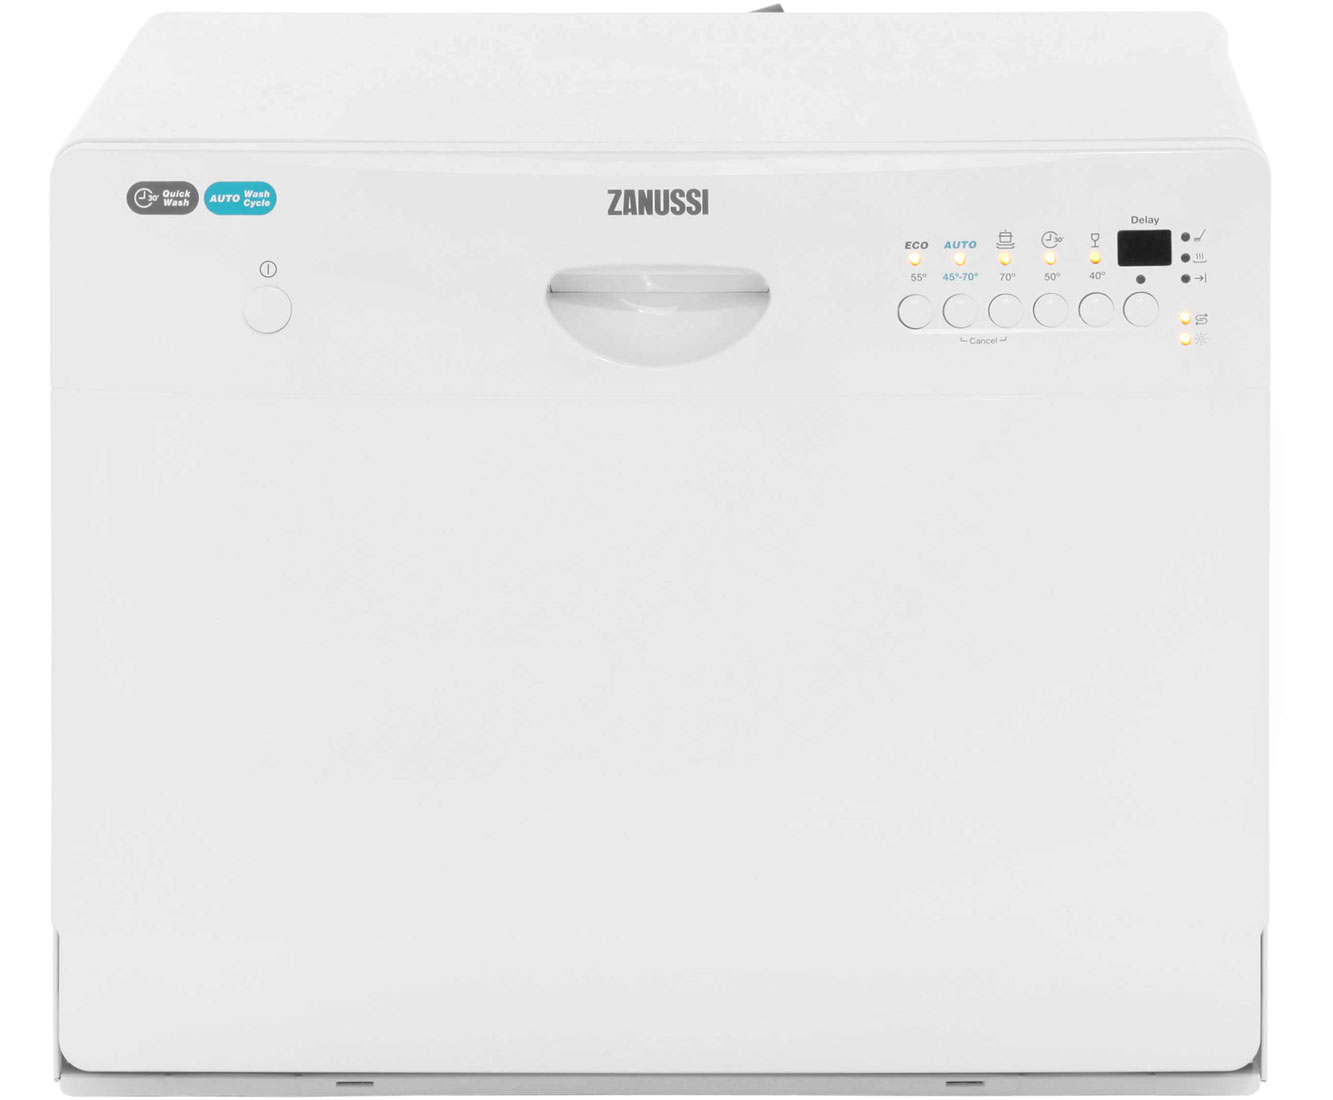 Zanussi ZDM16301WA Table Top Dishwasher - White